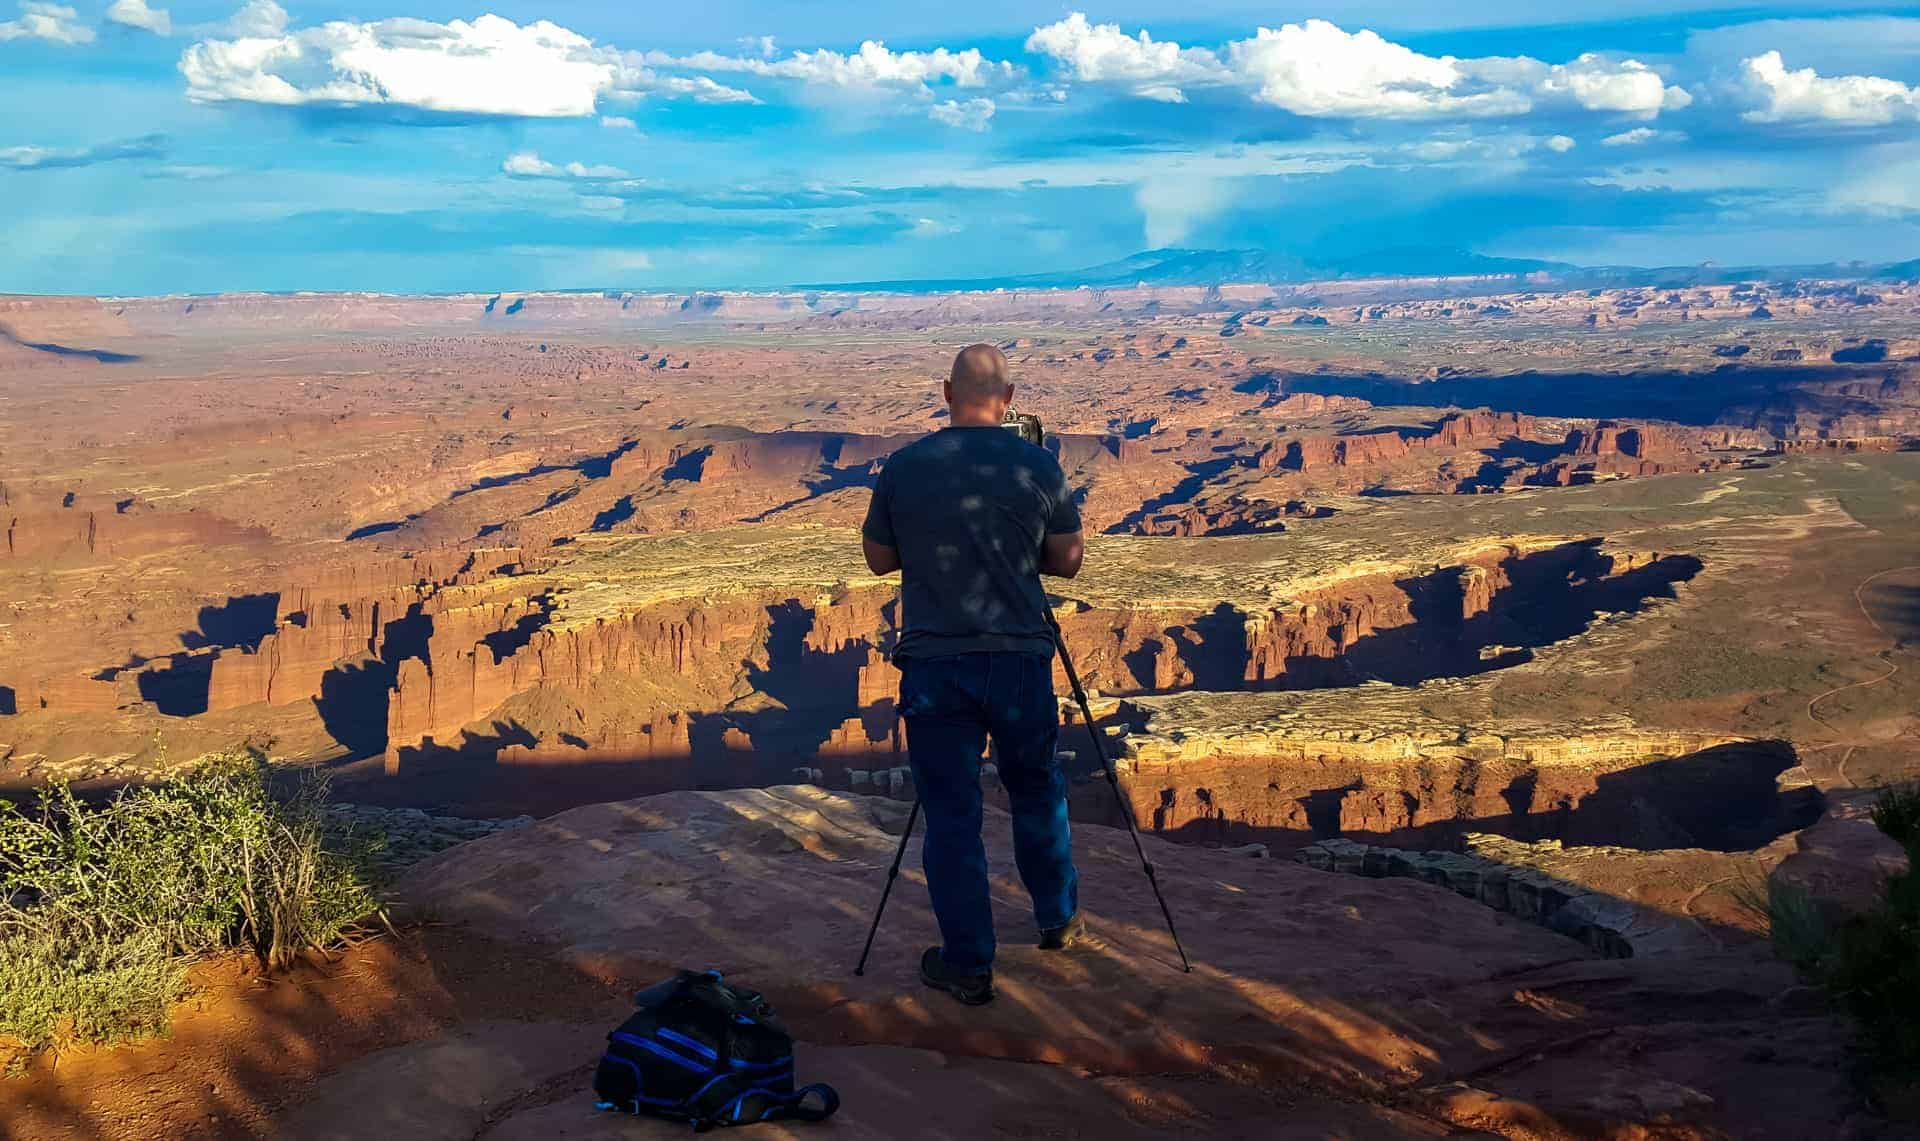 A photographer overlooking Canyonlands National Park at Grand View point taking a photo with a tripod.